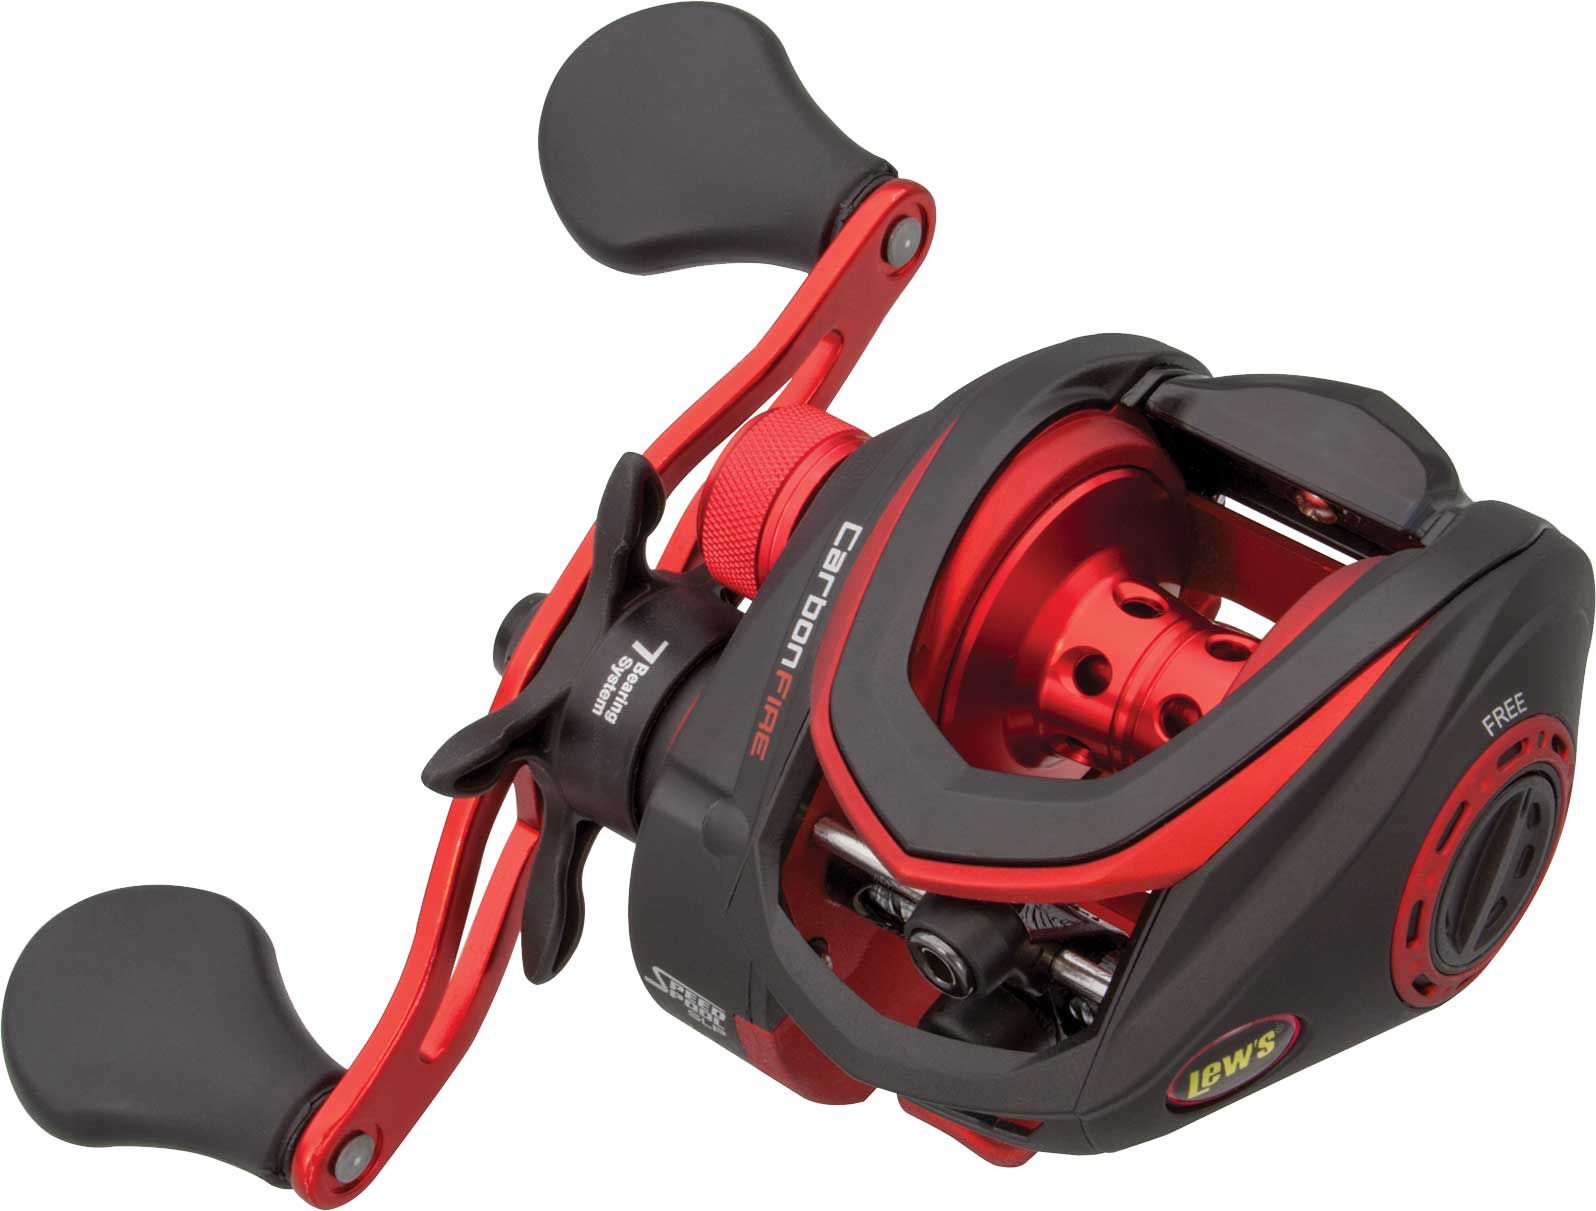 Lew39s Carbon Fire Speed Spool Baitcasting Reels Dick39s